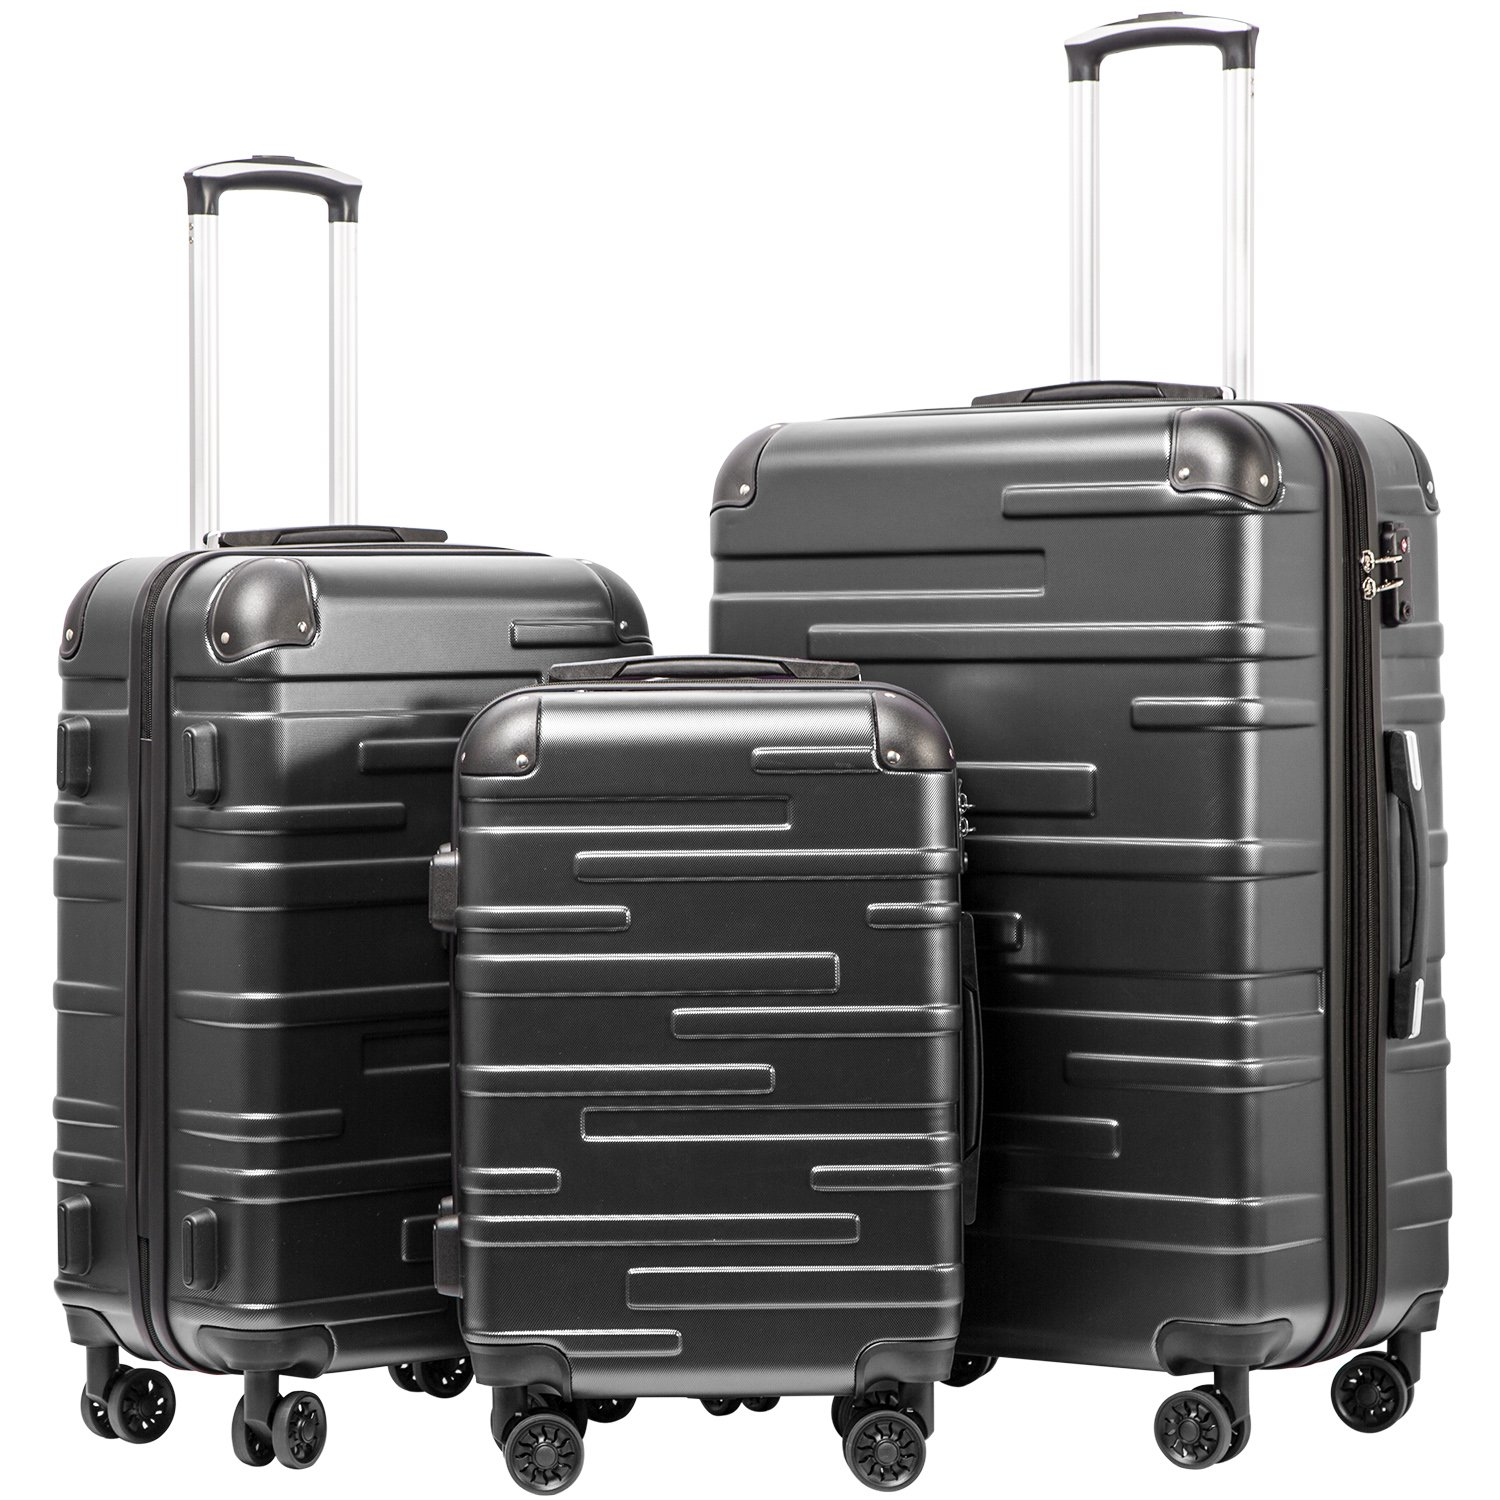 Coolife Luggage Expandable Suitcase 3 Piece Set with TSA Lock Spinner 20in24in28in (reg grey)